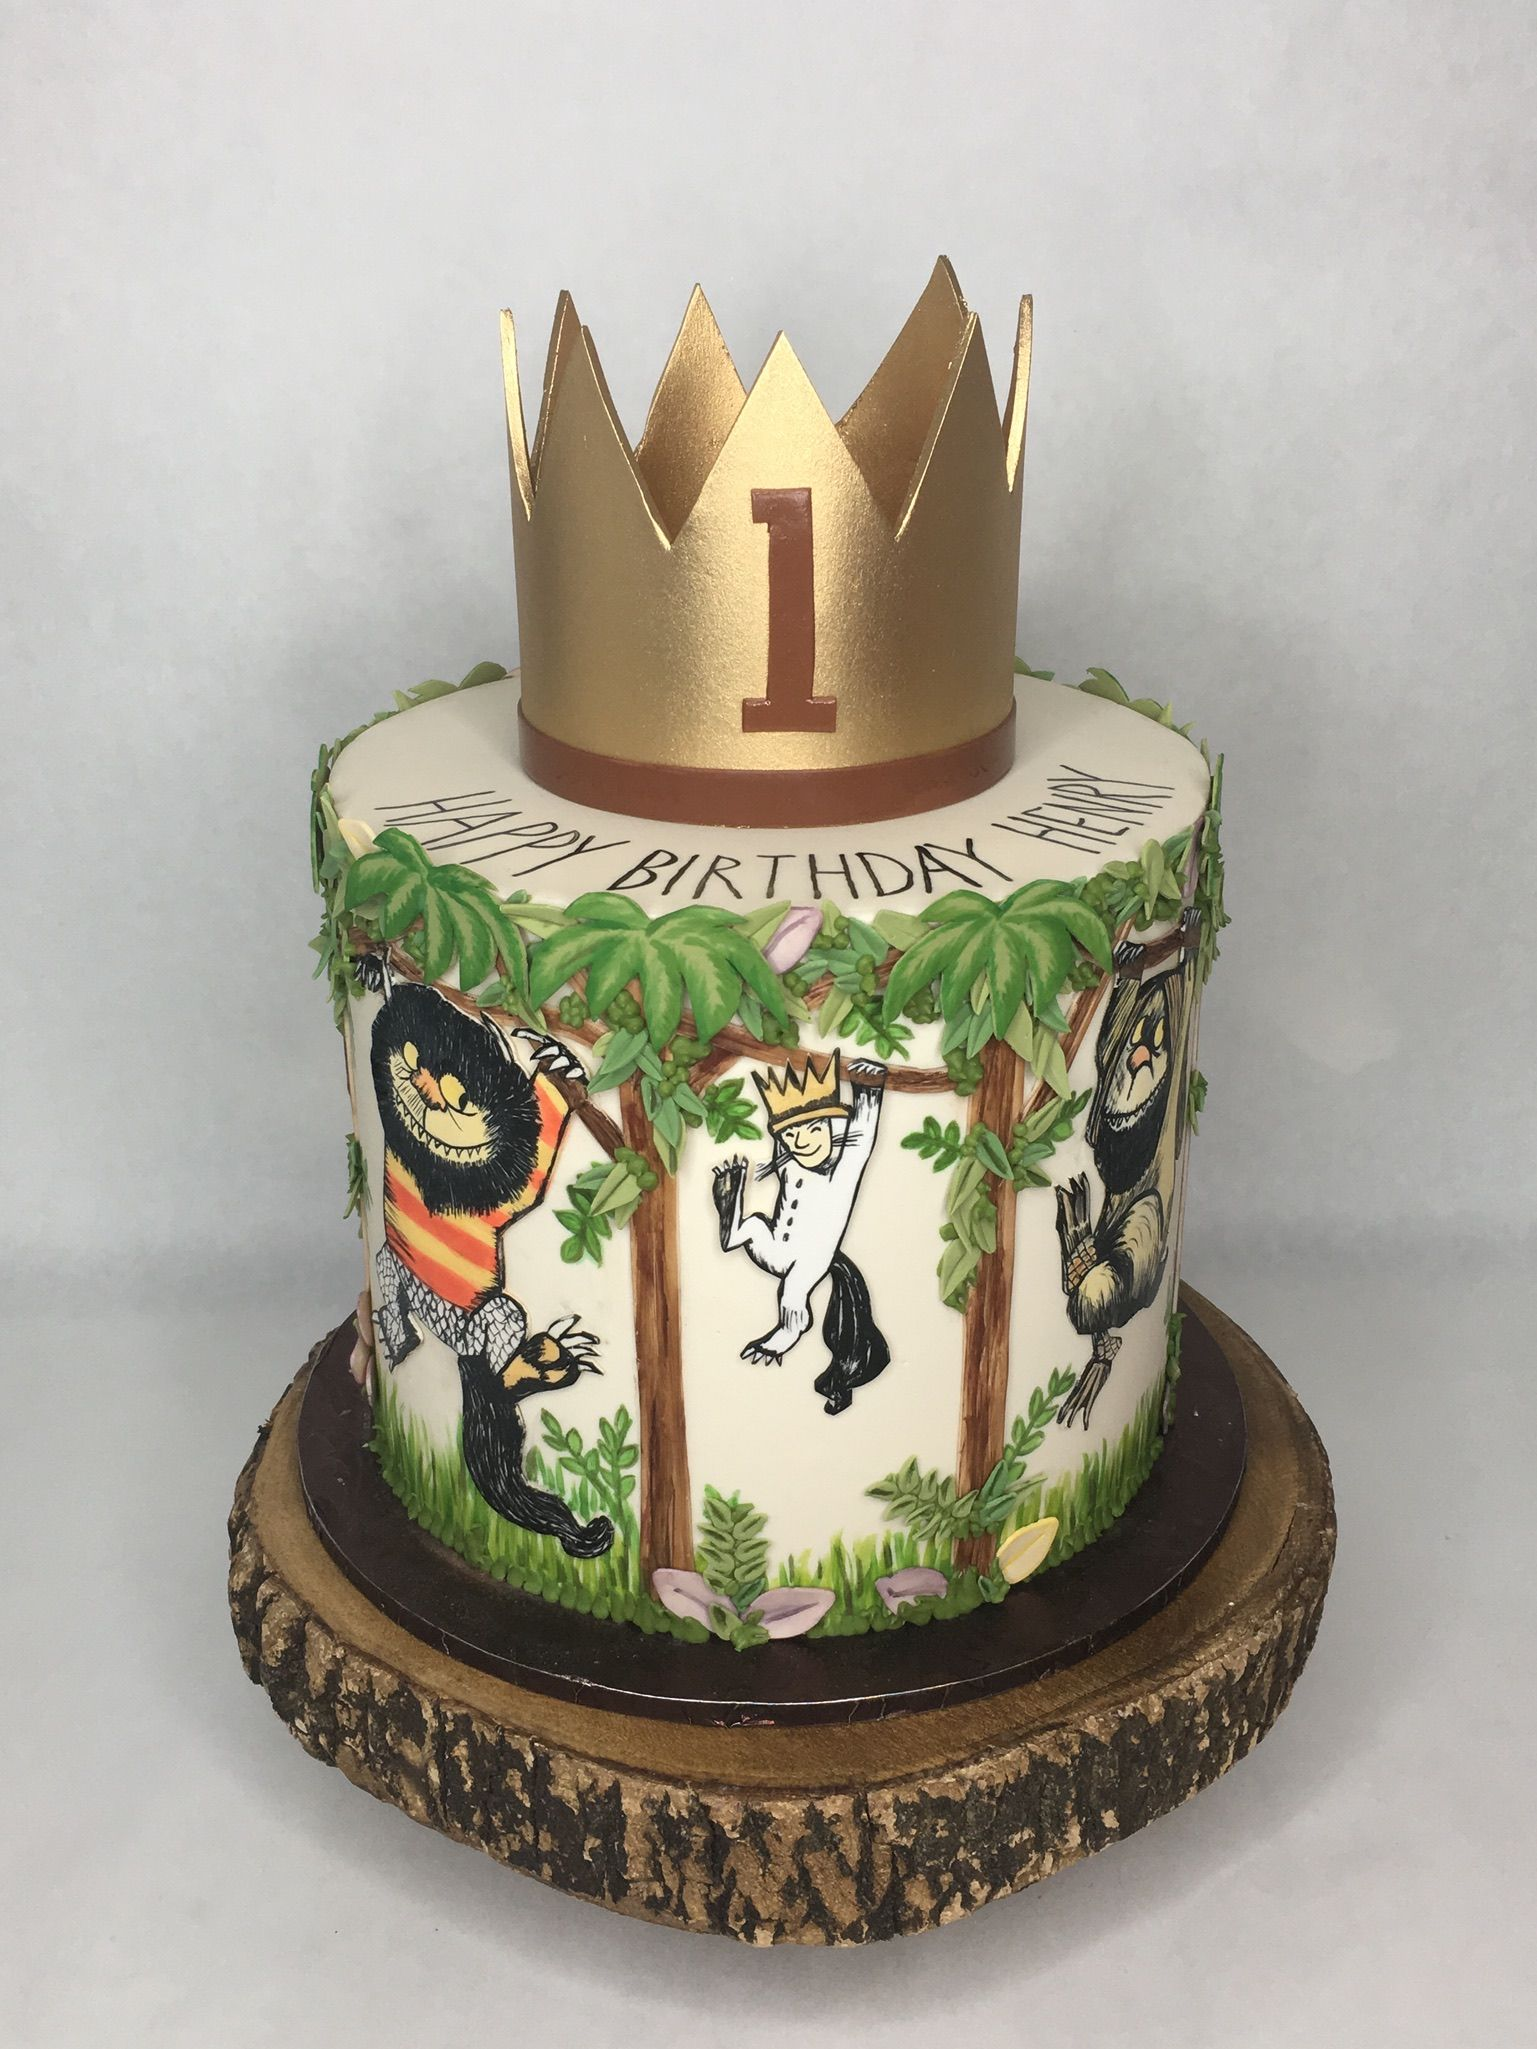 Where The Wild Things Are Custom Cakes Seattle Cakes Let The